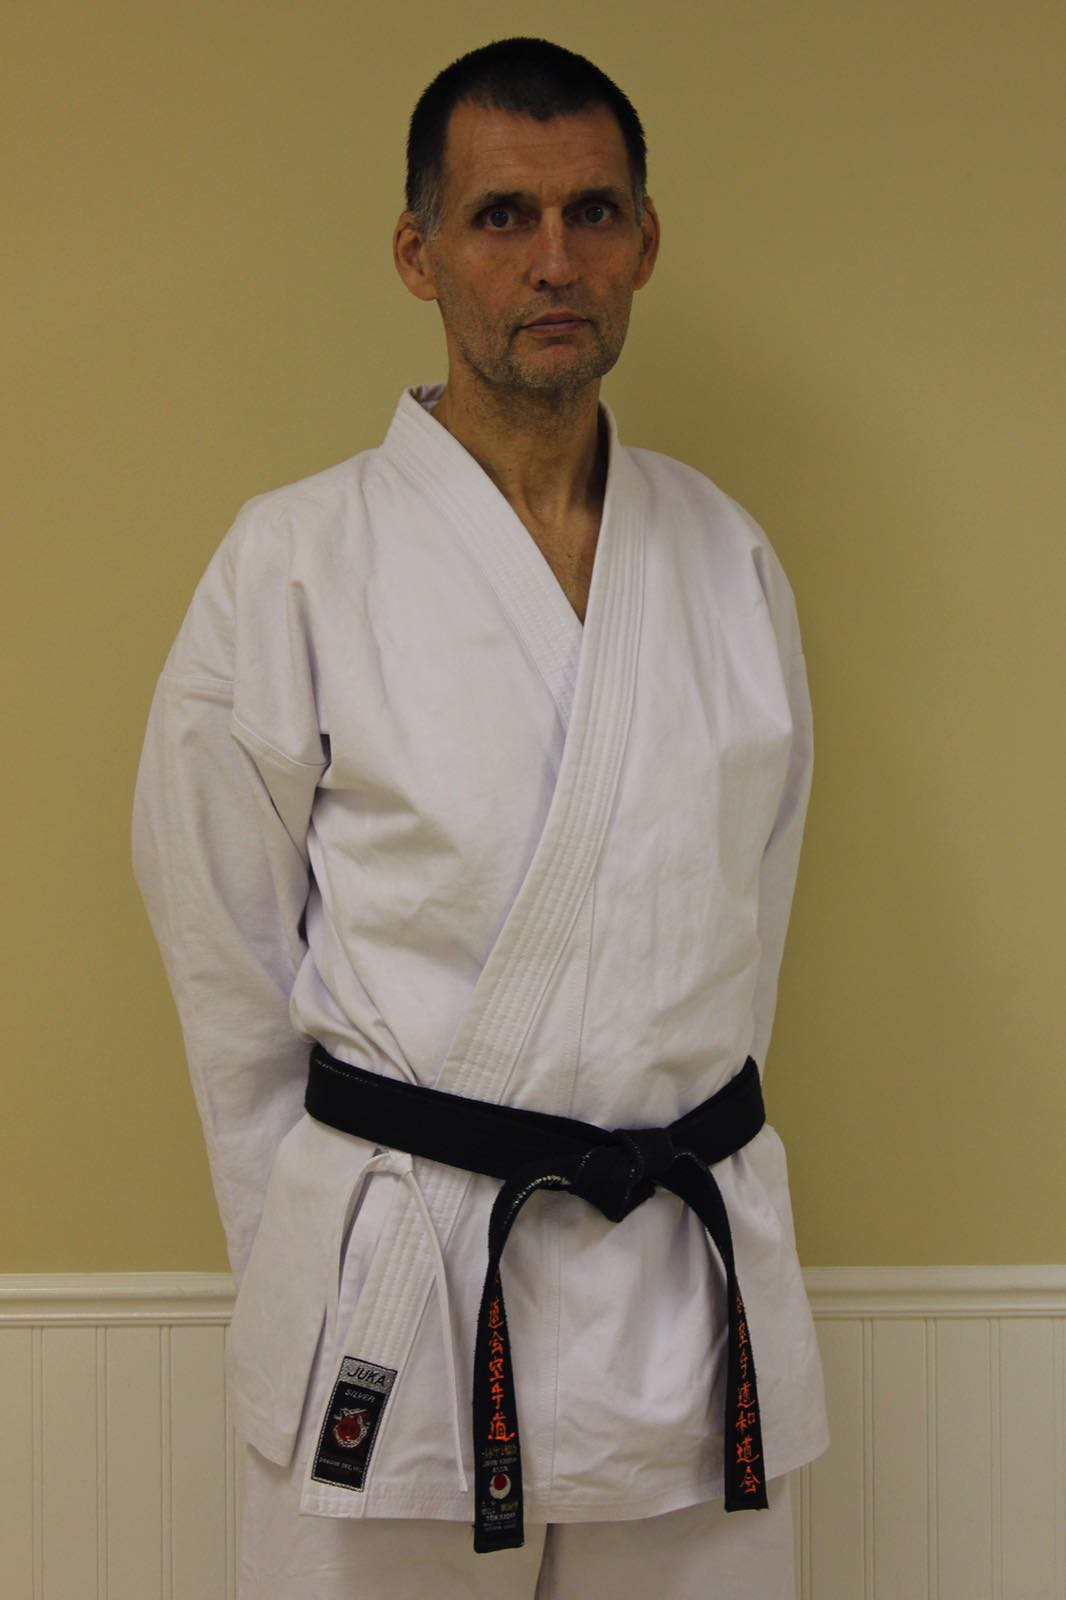 Sensei Elliott Knowles